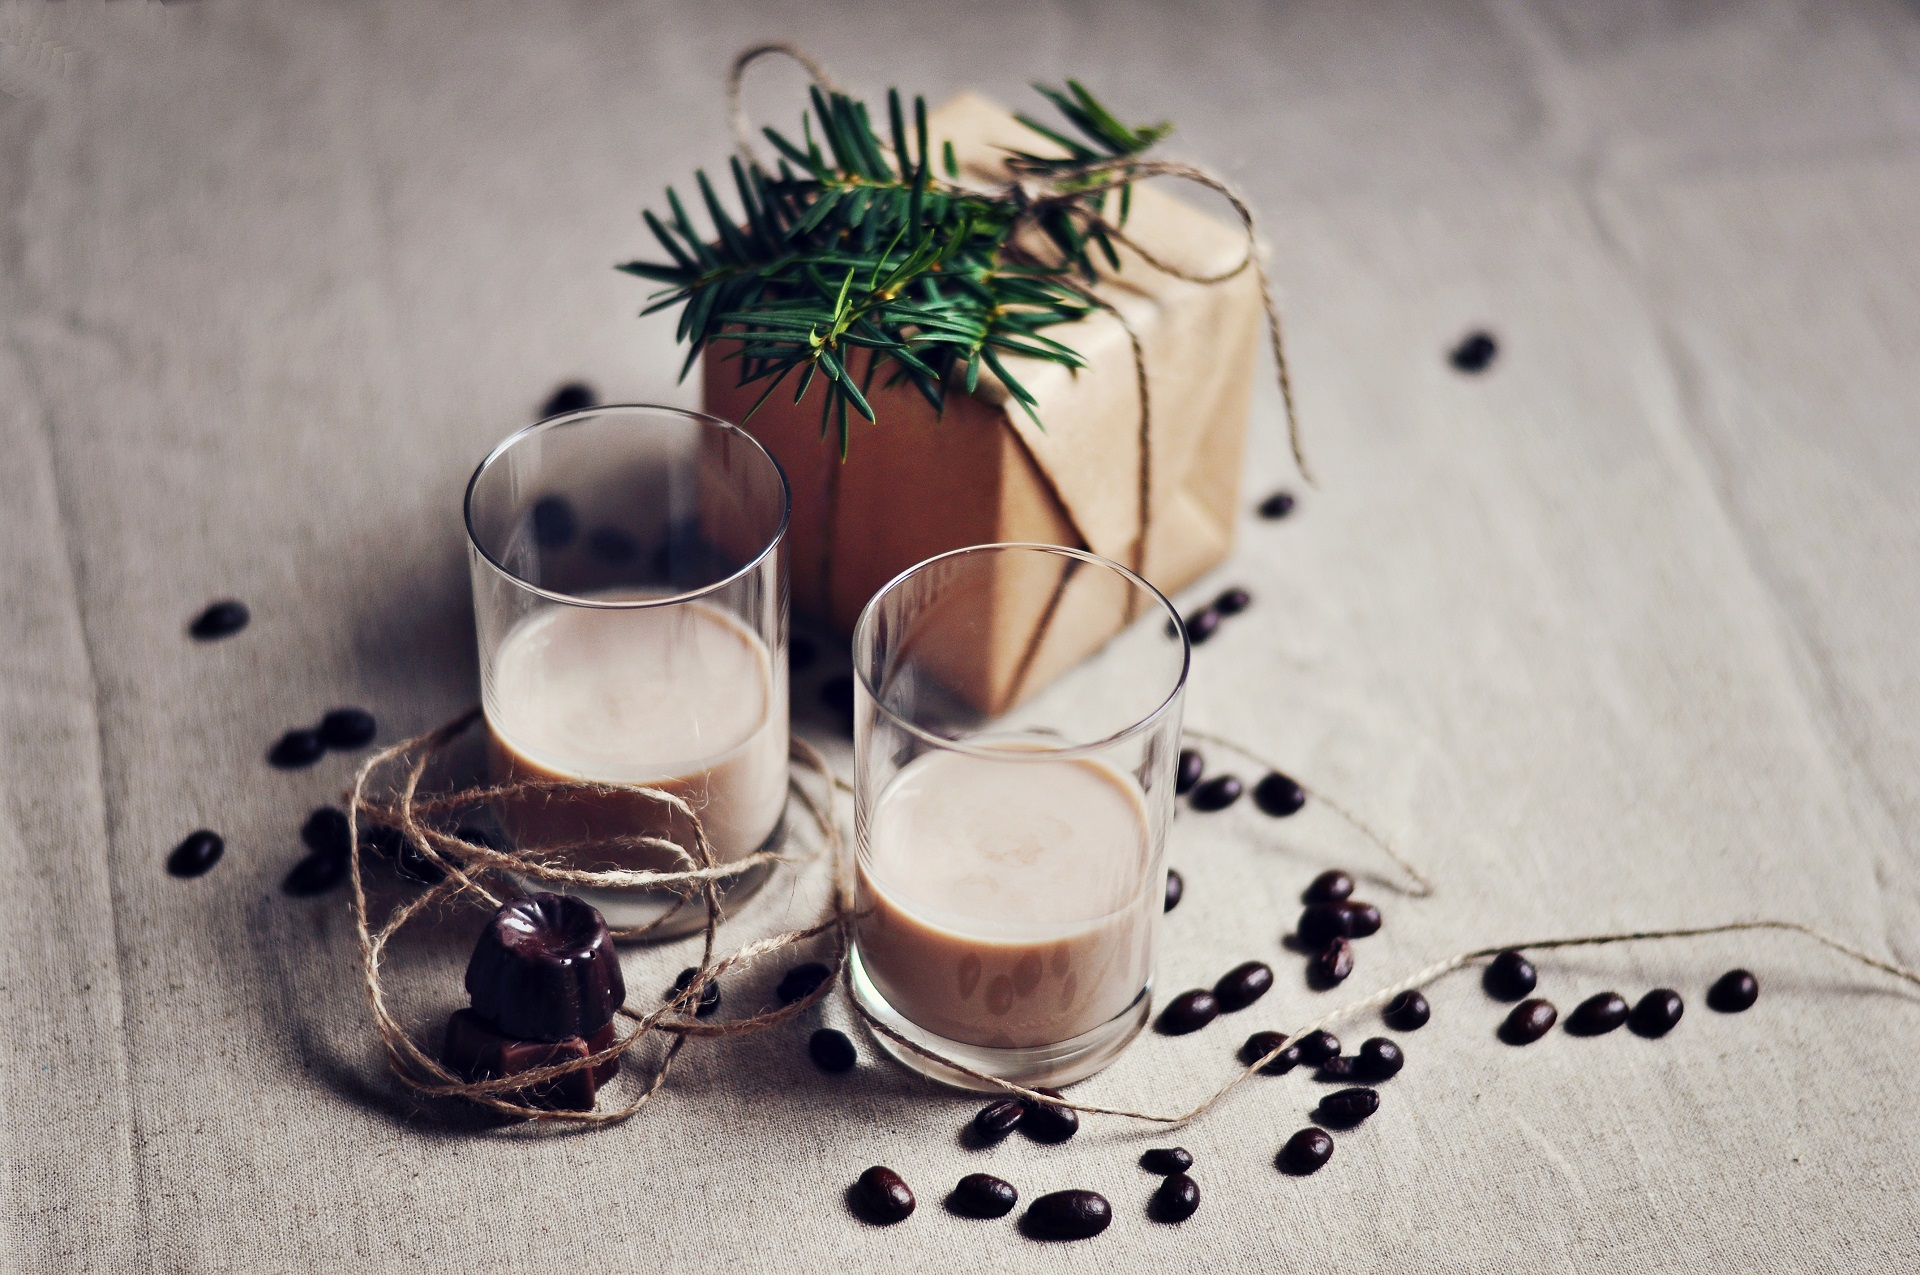 Homemade bailey's liqueur recipe.